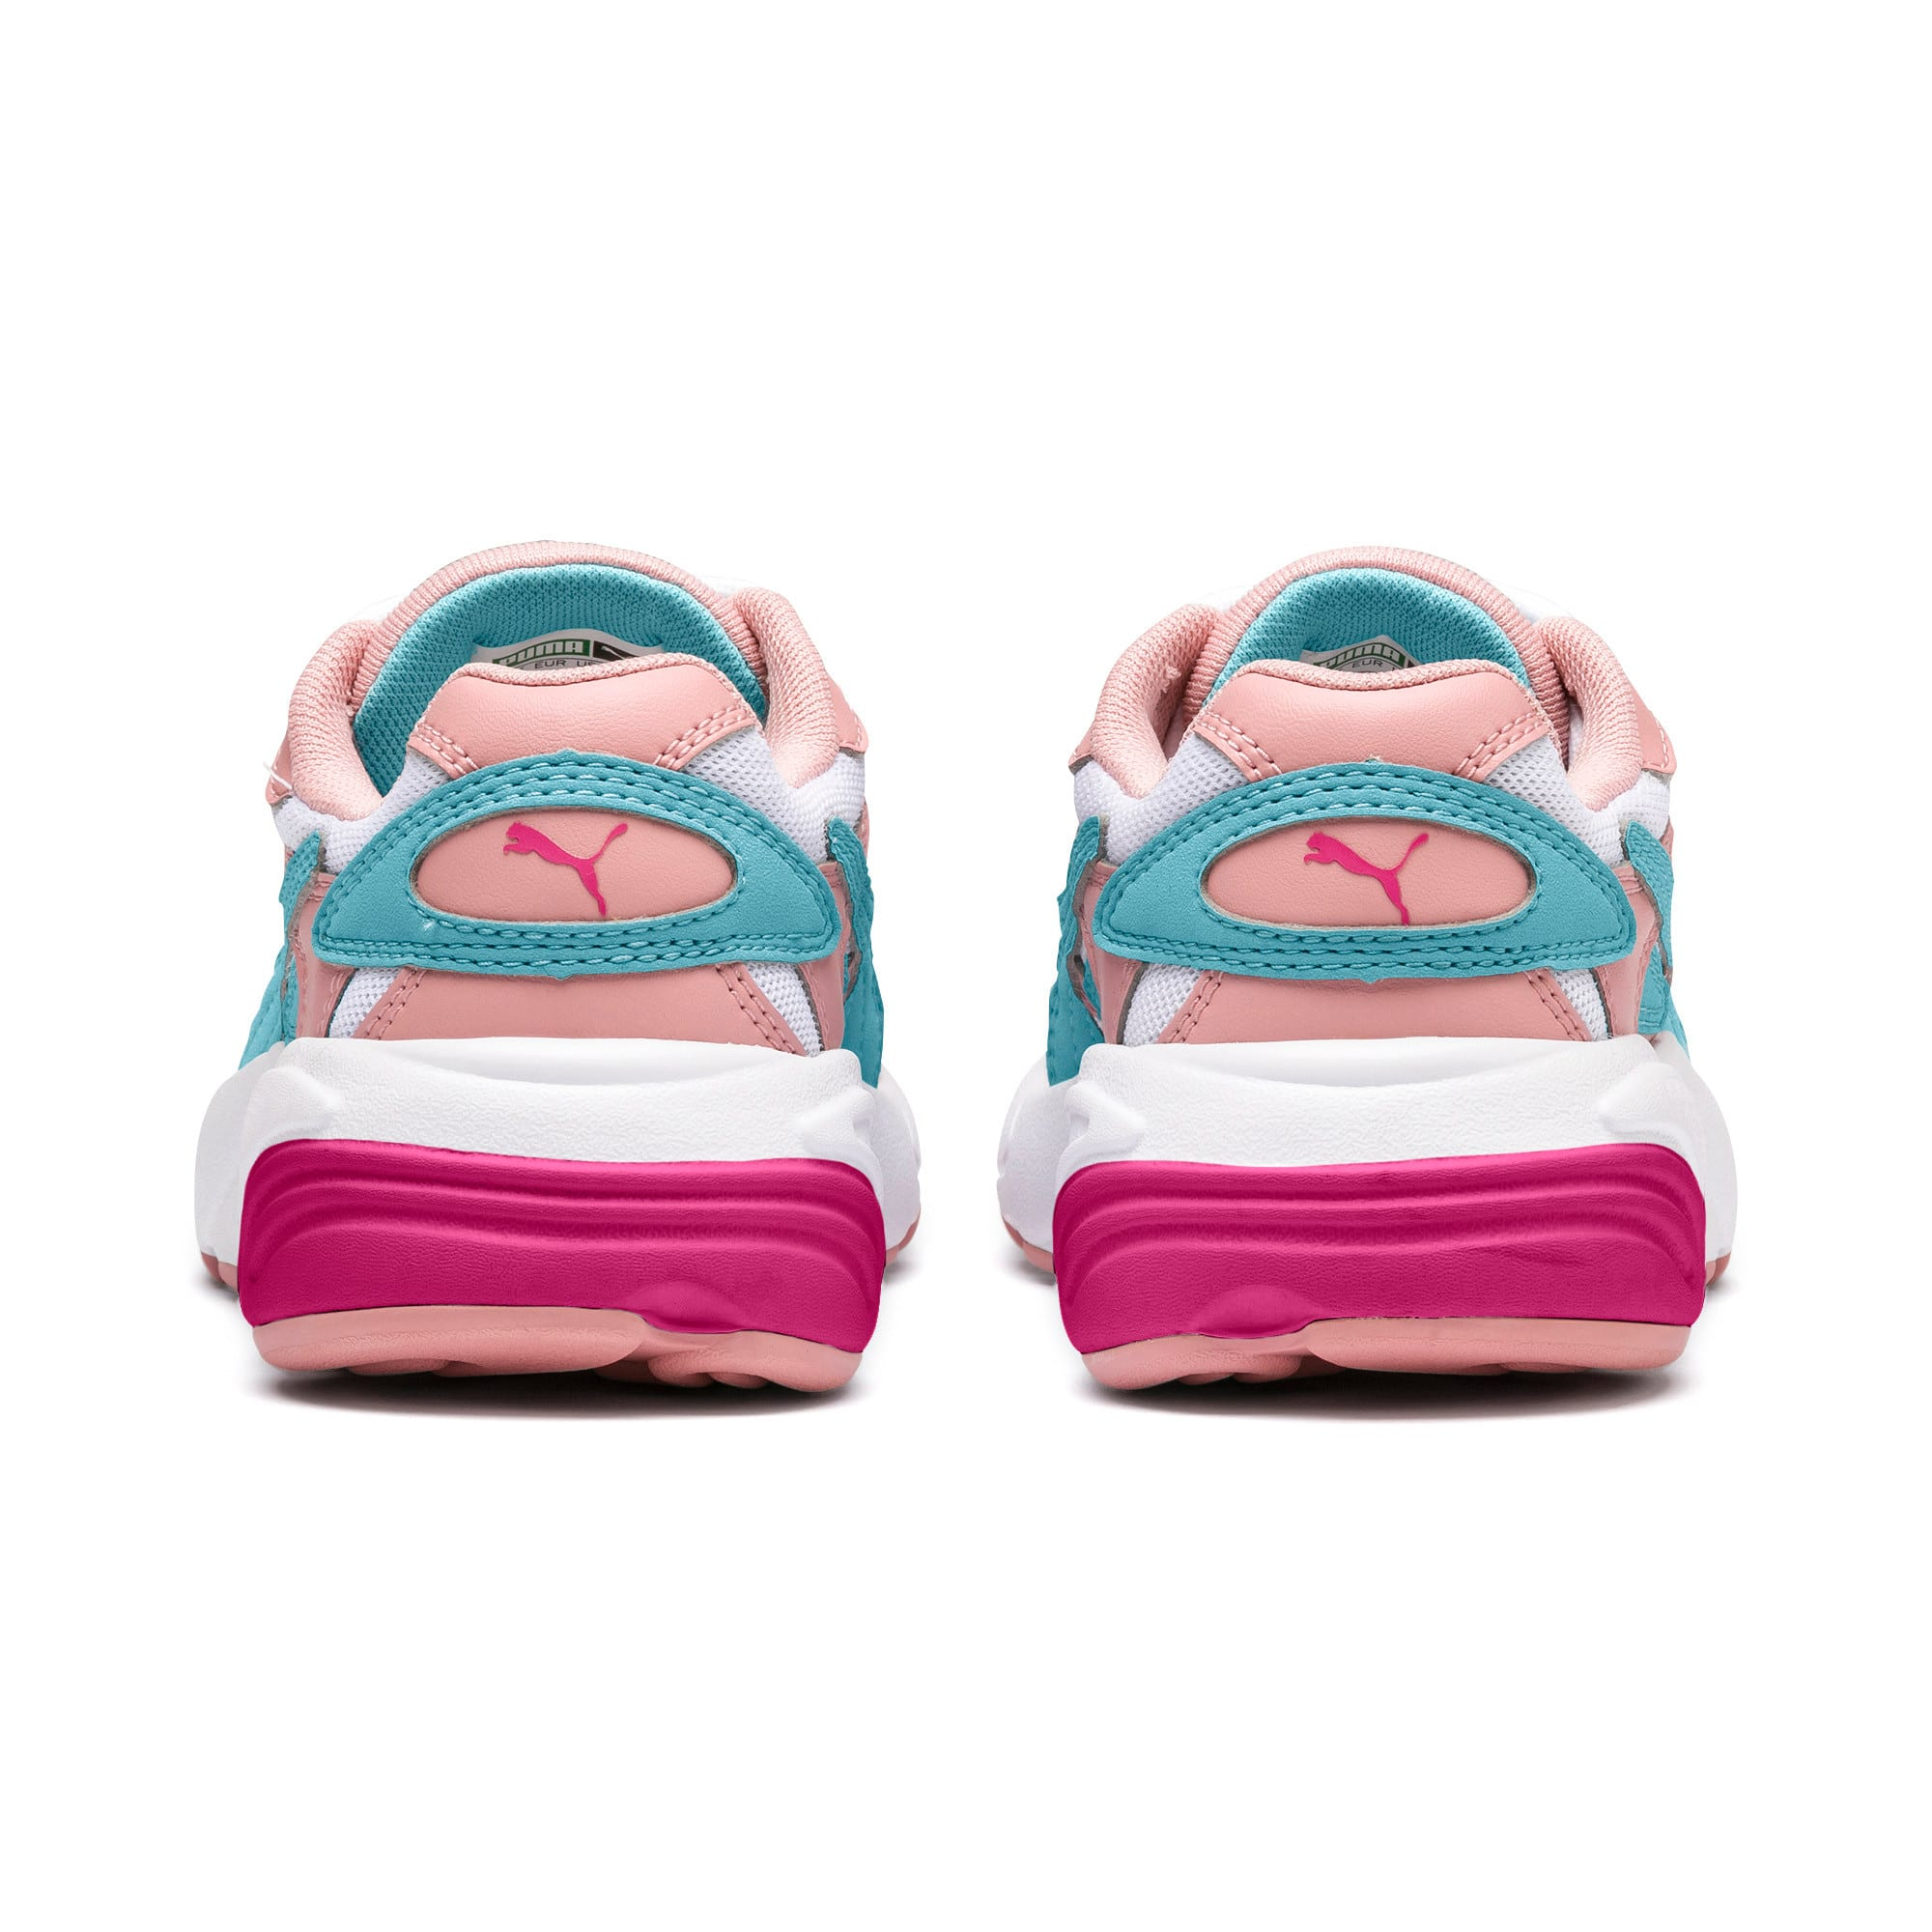 CELL Alien Cosmic Little Kids' Shoes, Bridal Rose-Milky Blue, large